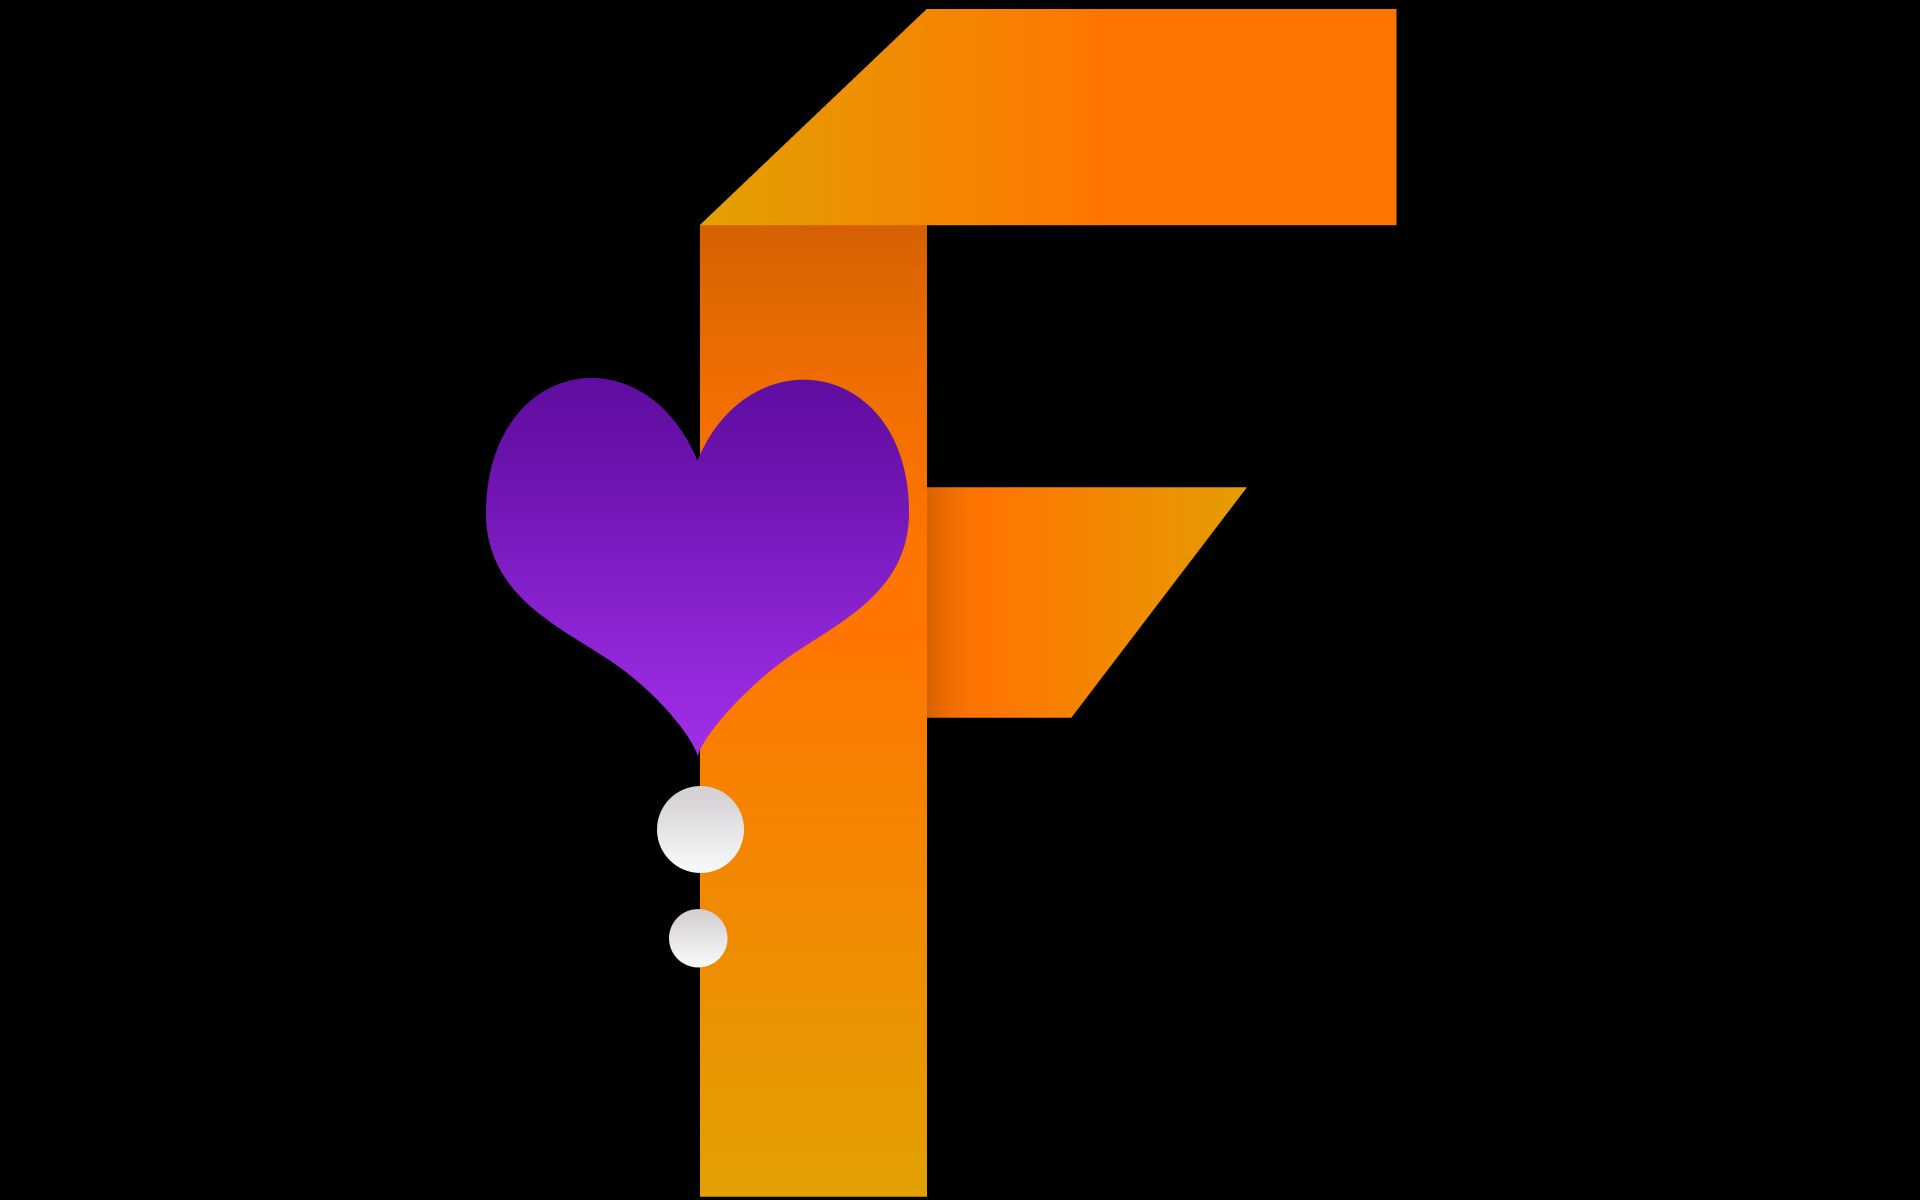 alphabet f wallpaper | alfabetos | pinterest